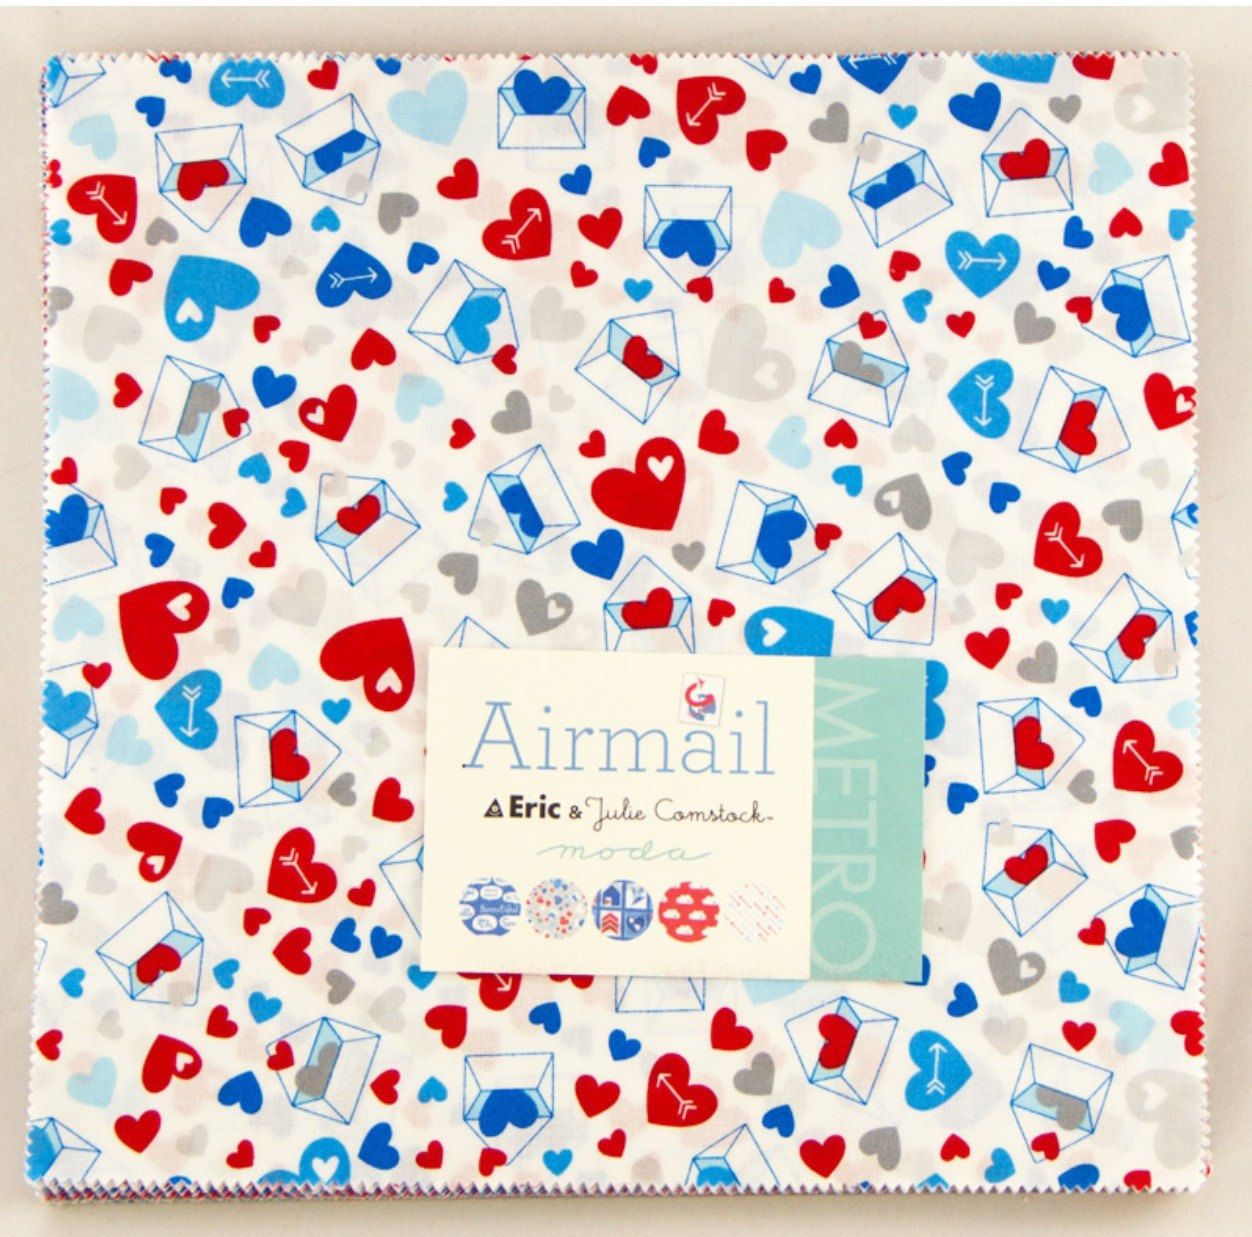 Airmail layer cake from the Comstocks for moda fabric. This listing is for 42 - 10 inch cotton squares.